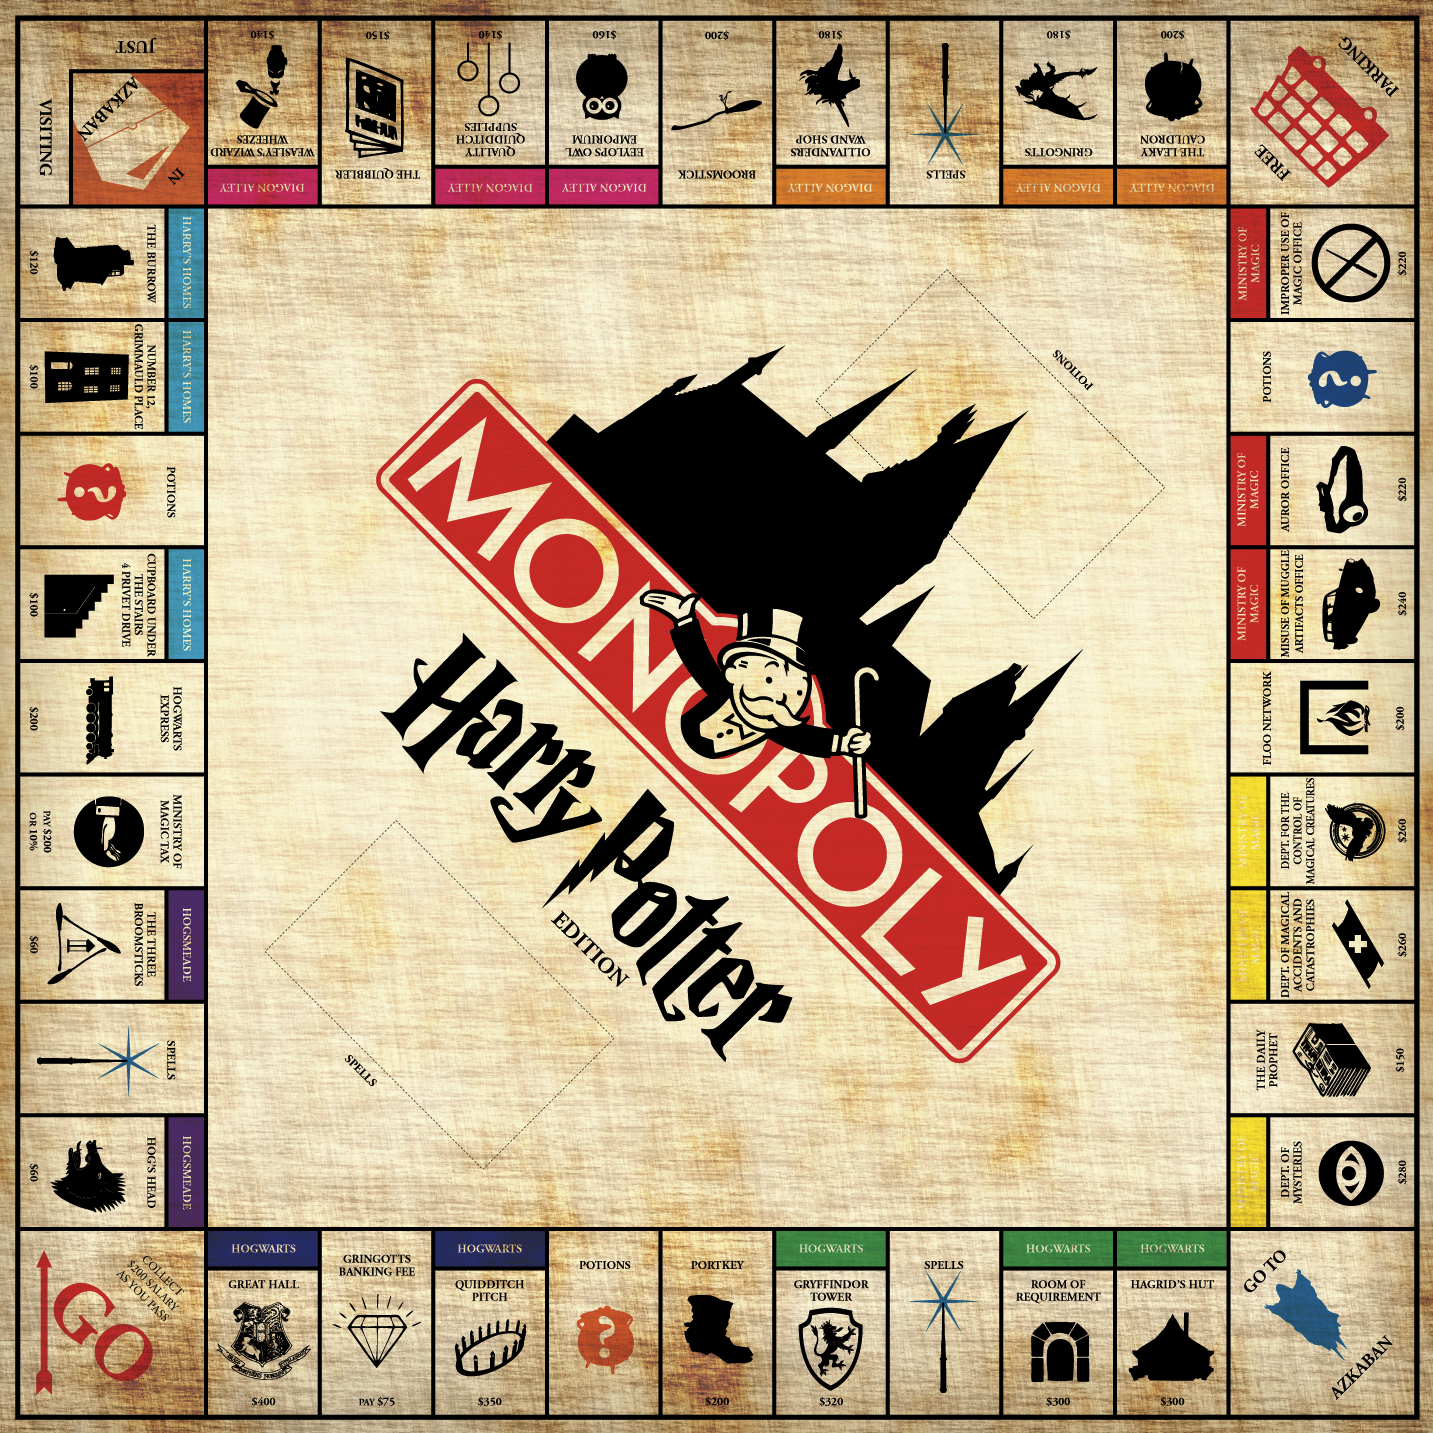 Harry potter monopoly this guy full on created the game but it harry potter monopoly this guy full on created the game but it is yet solutioingenieria Gallery